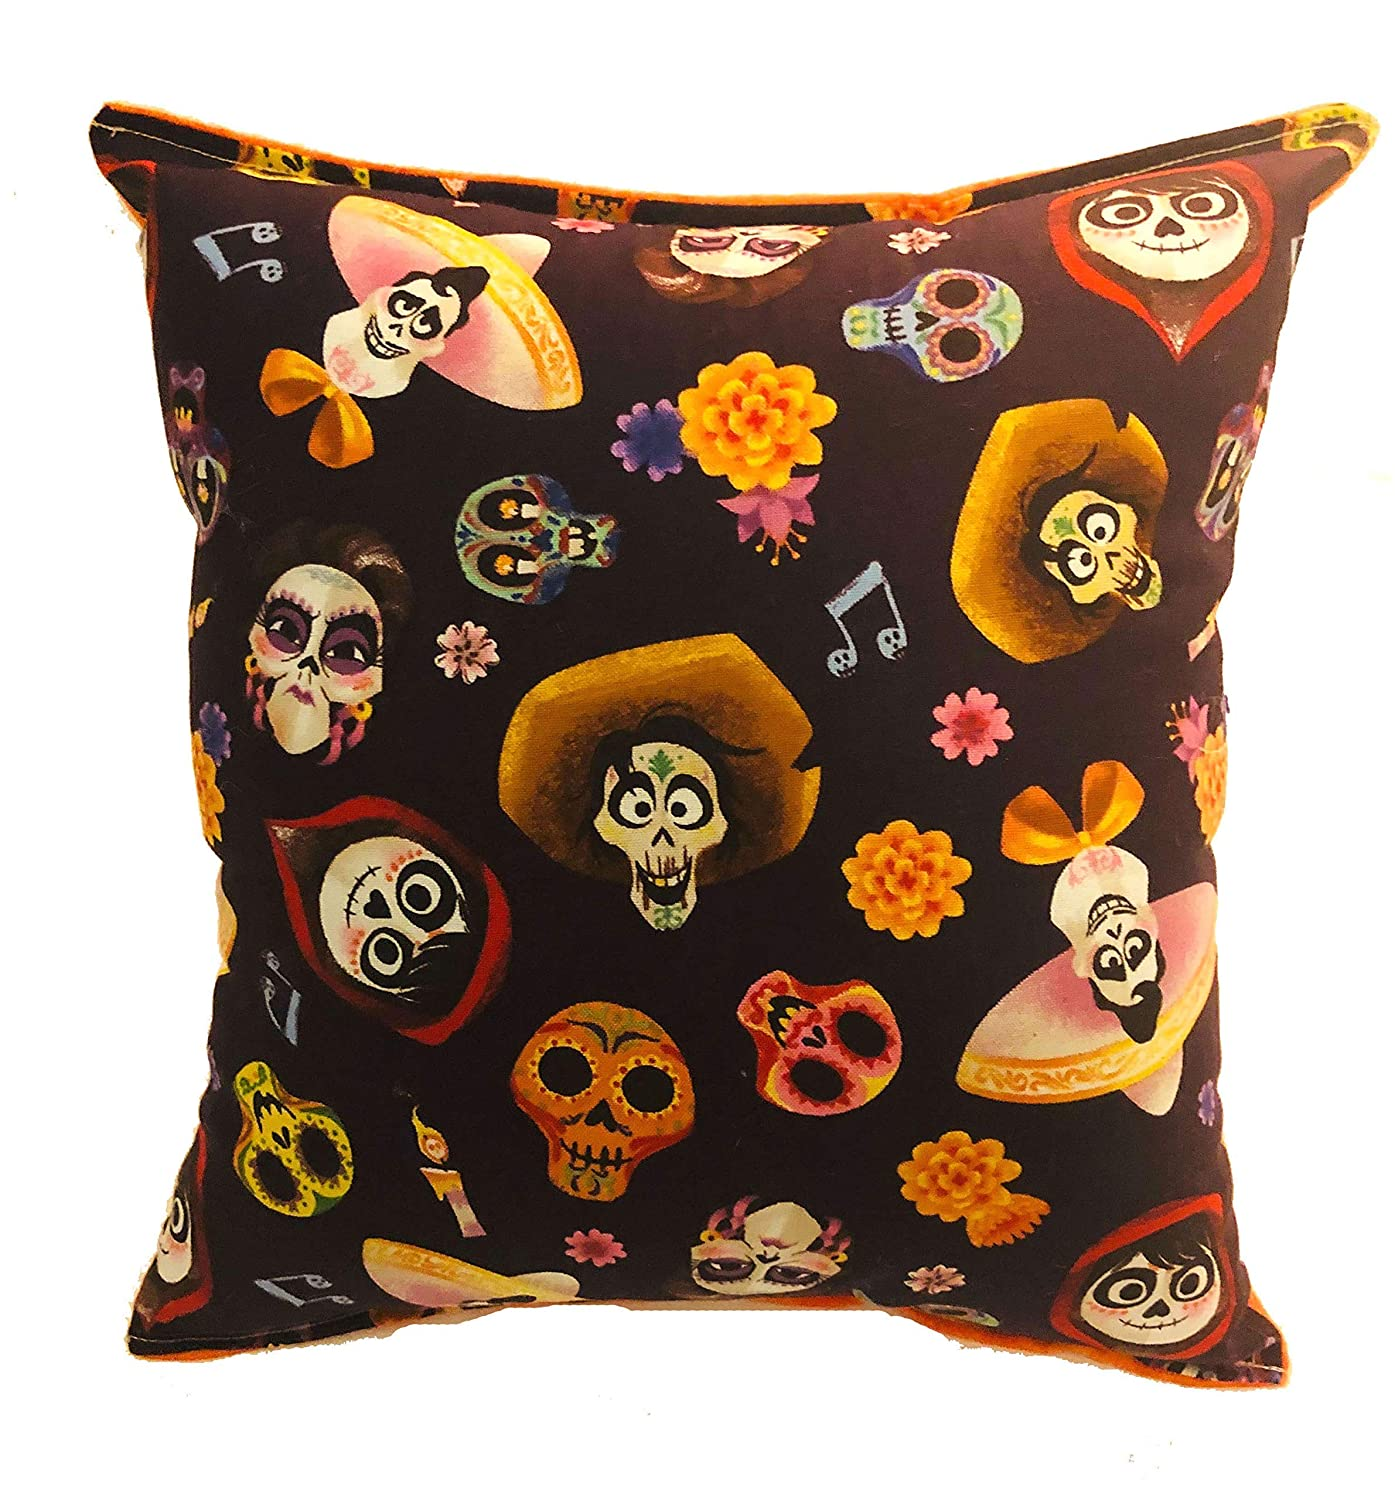 Coco Direct Award-winning store sale of manufacturer Pillow Disney All Our Pillows Hypo Handmade Are